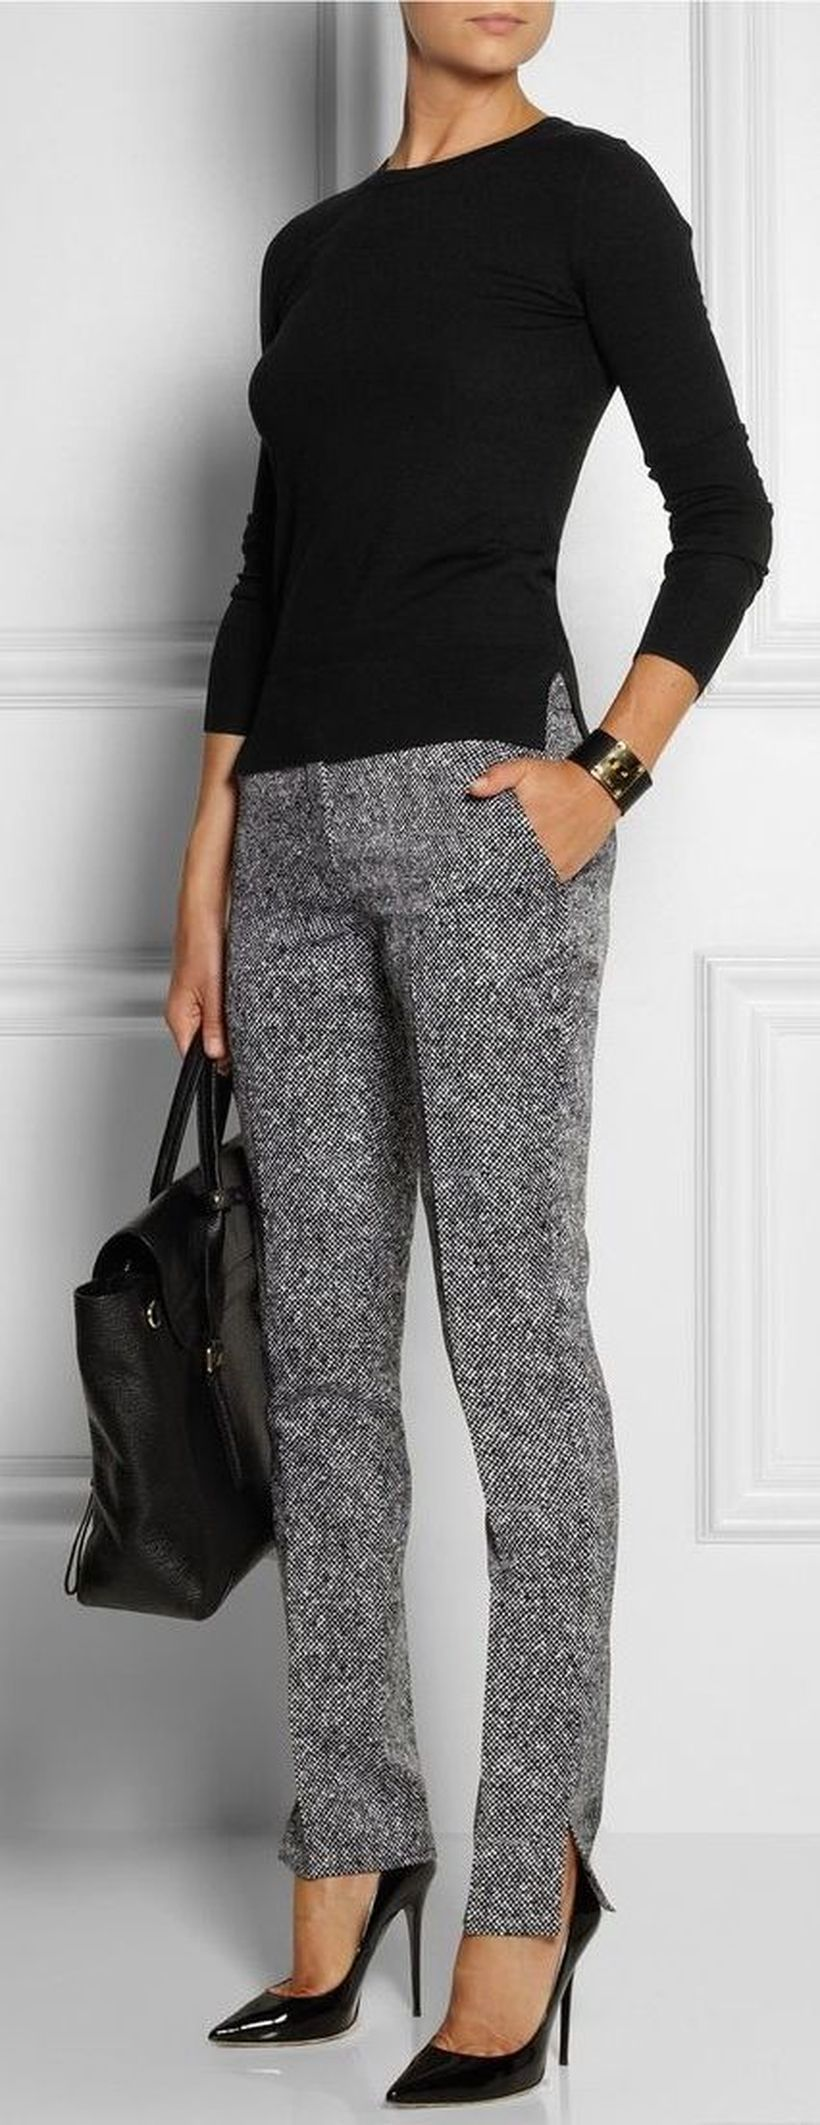 Black-sweater-and-grey-pants